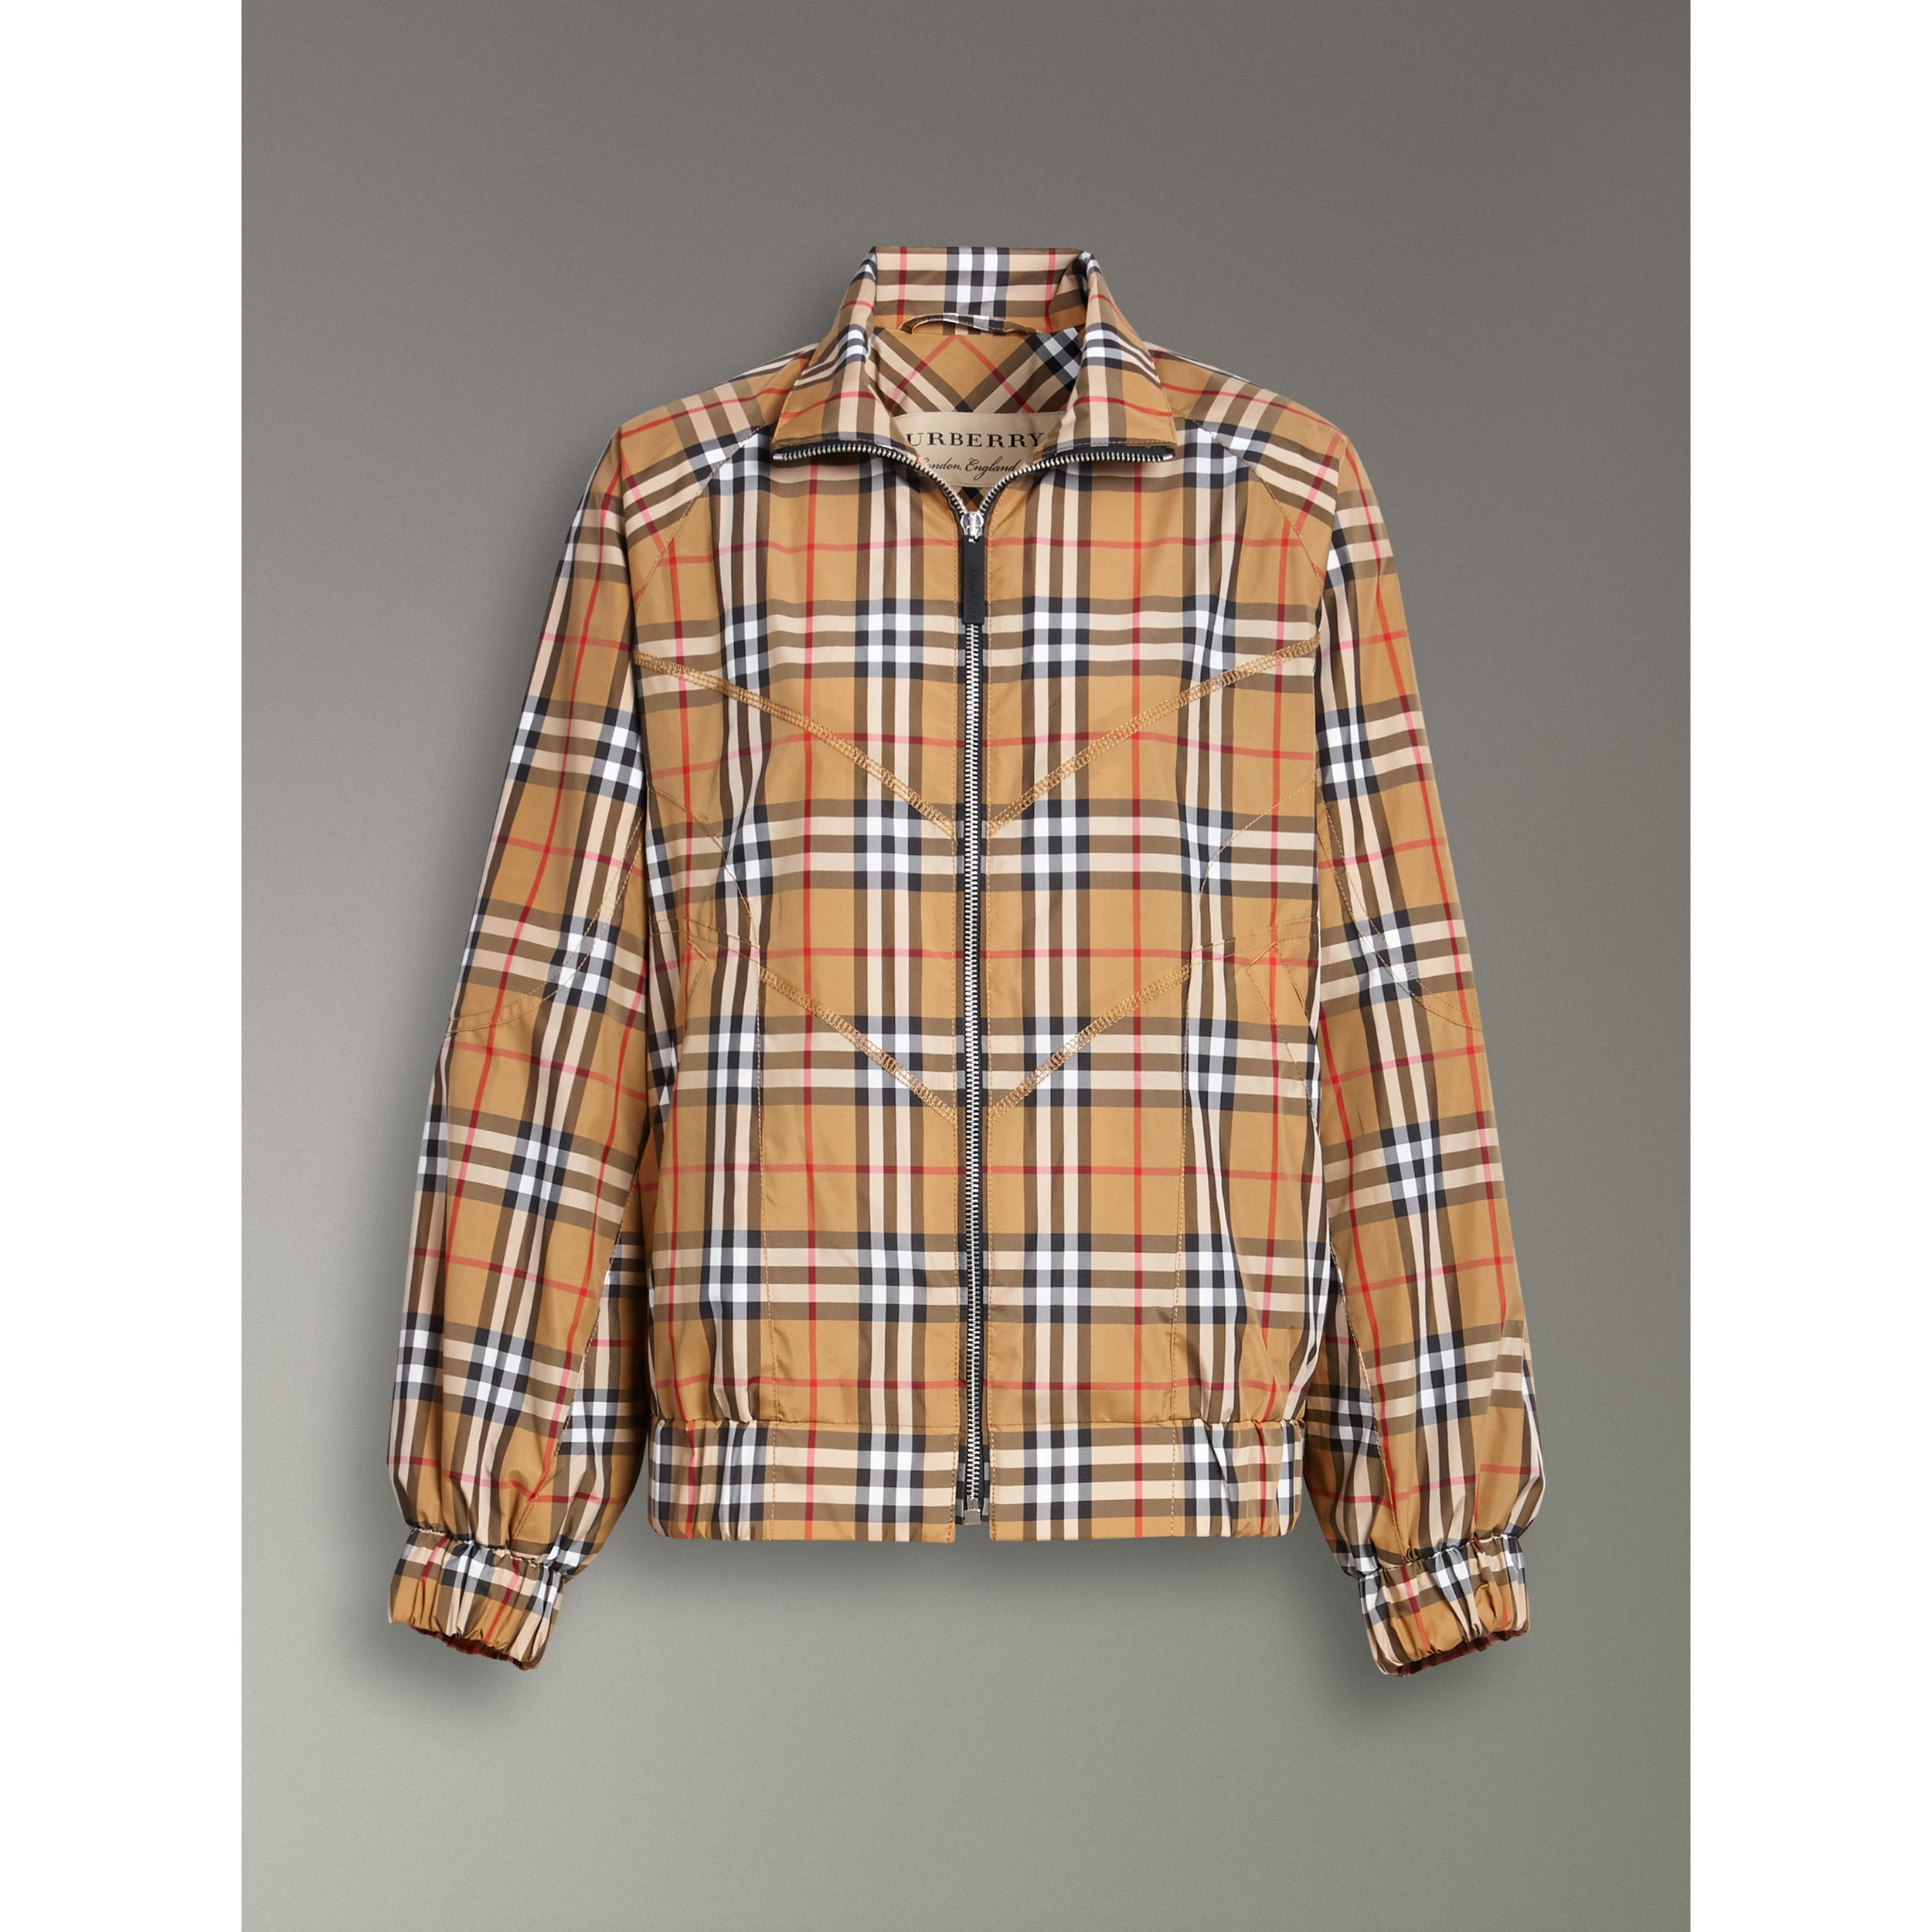 Topstitch Detail Vintage Check Harrington Jacket in Antique Yellow - Women | Burberry - 4